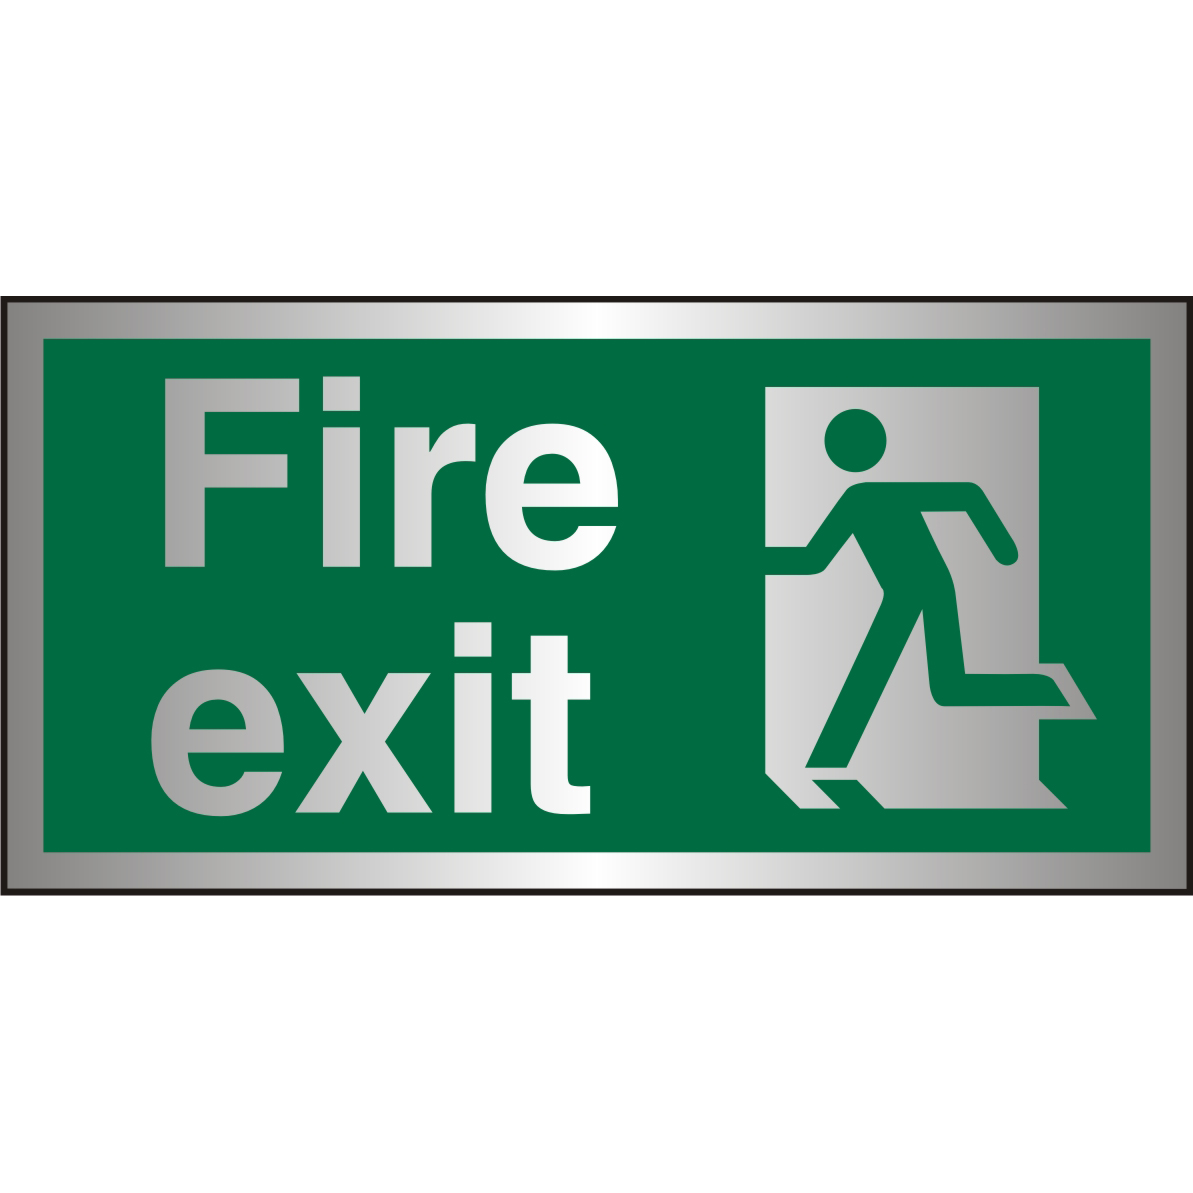 Brushed Alu Sign 300x150 1.5mm S/A FireExit Man Running Left Ref BASP319300x150 Up to 10 Day Leadtime